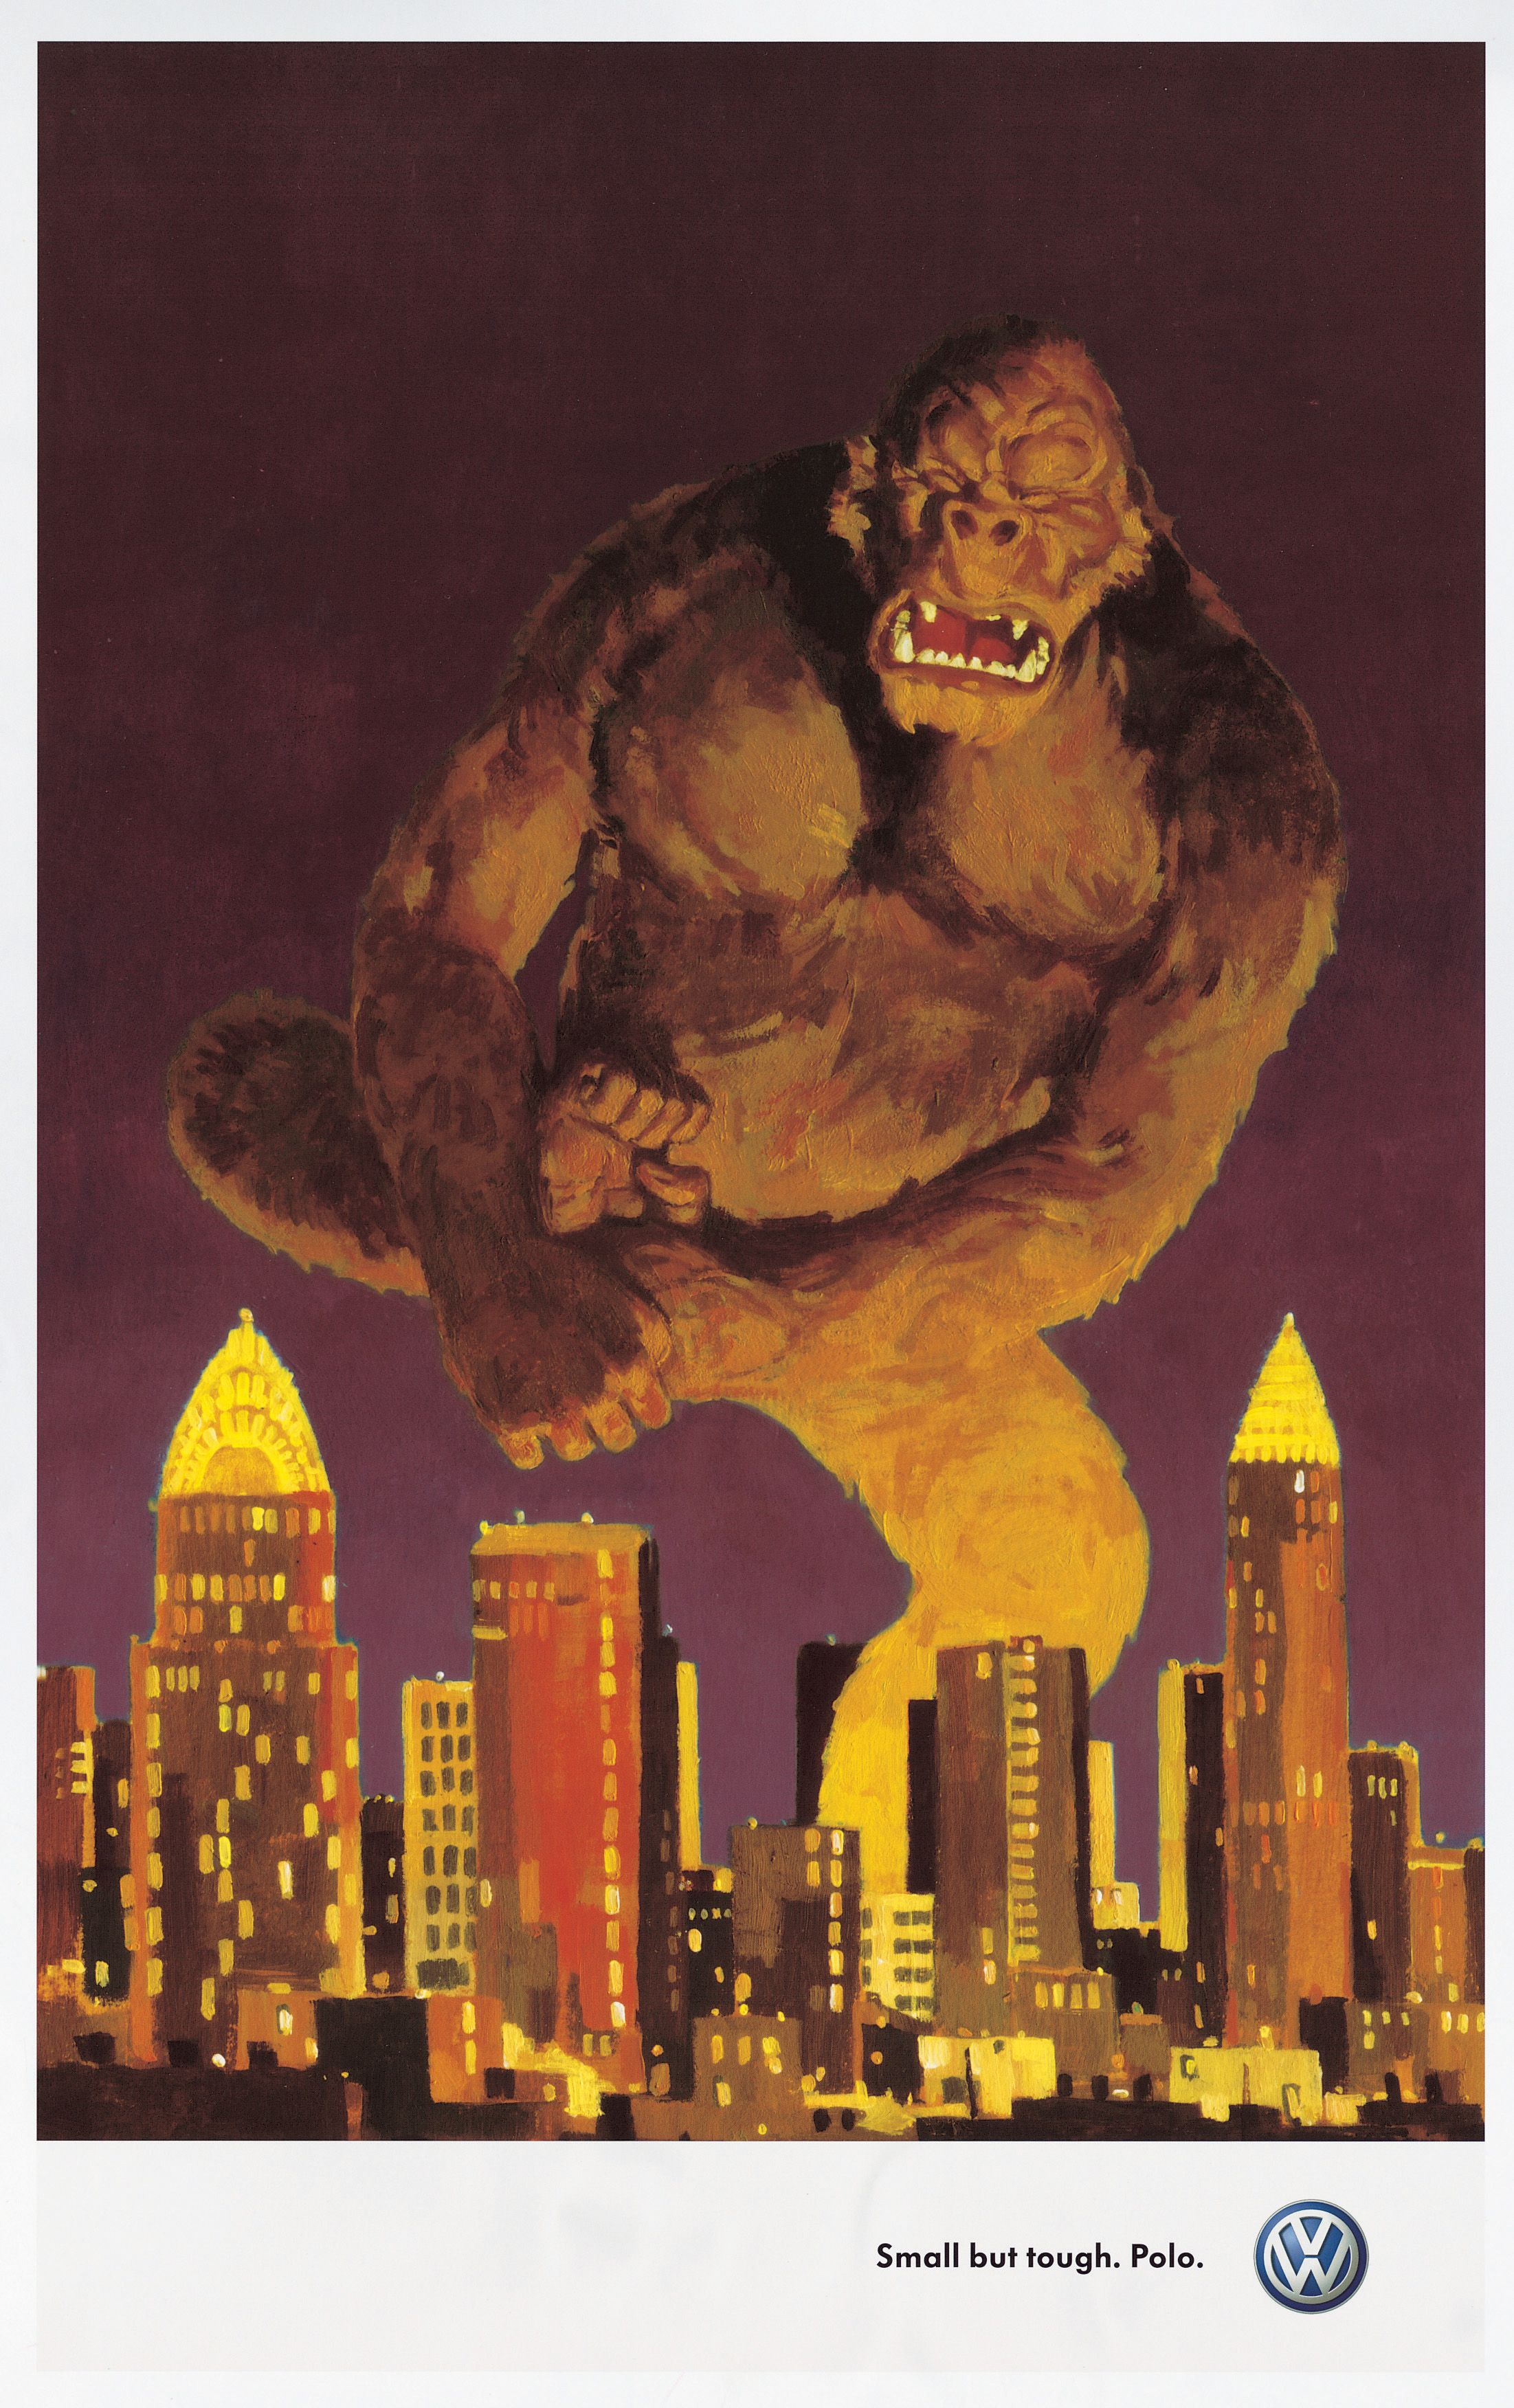 King kong advertisement for Volkswagen Polo. Small but Tough. Nice vintage illustration